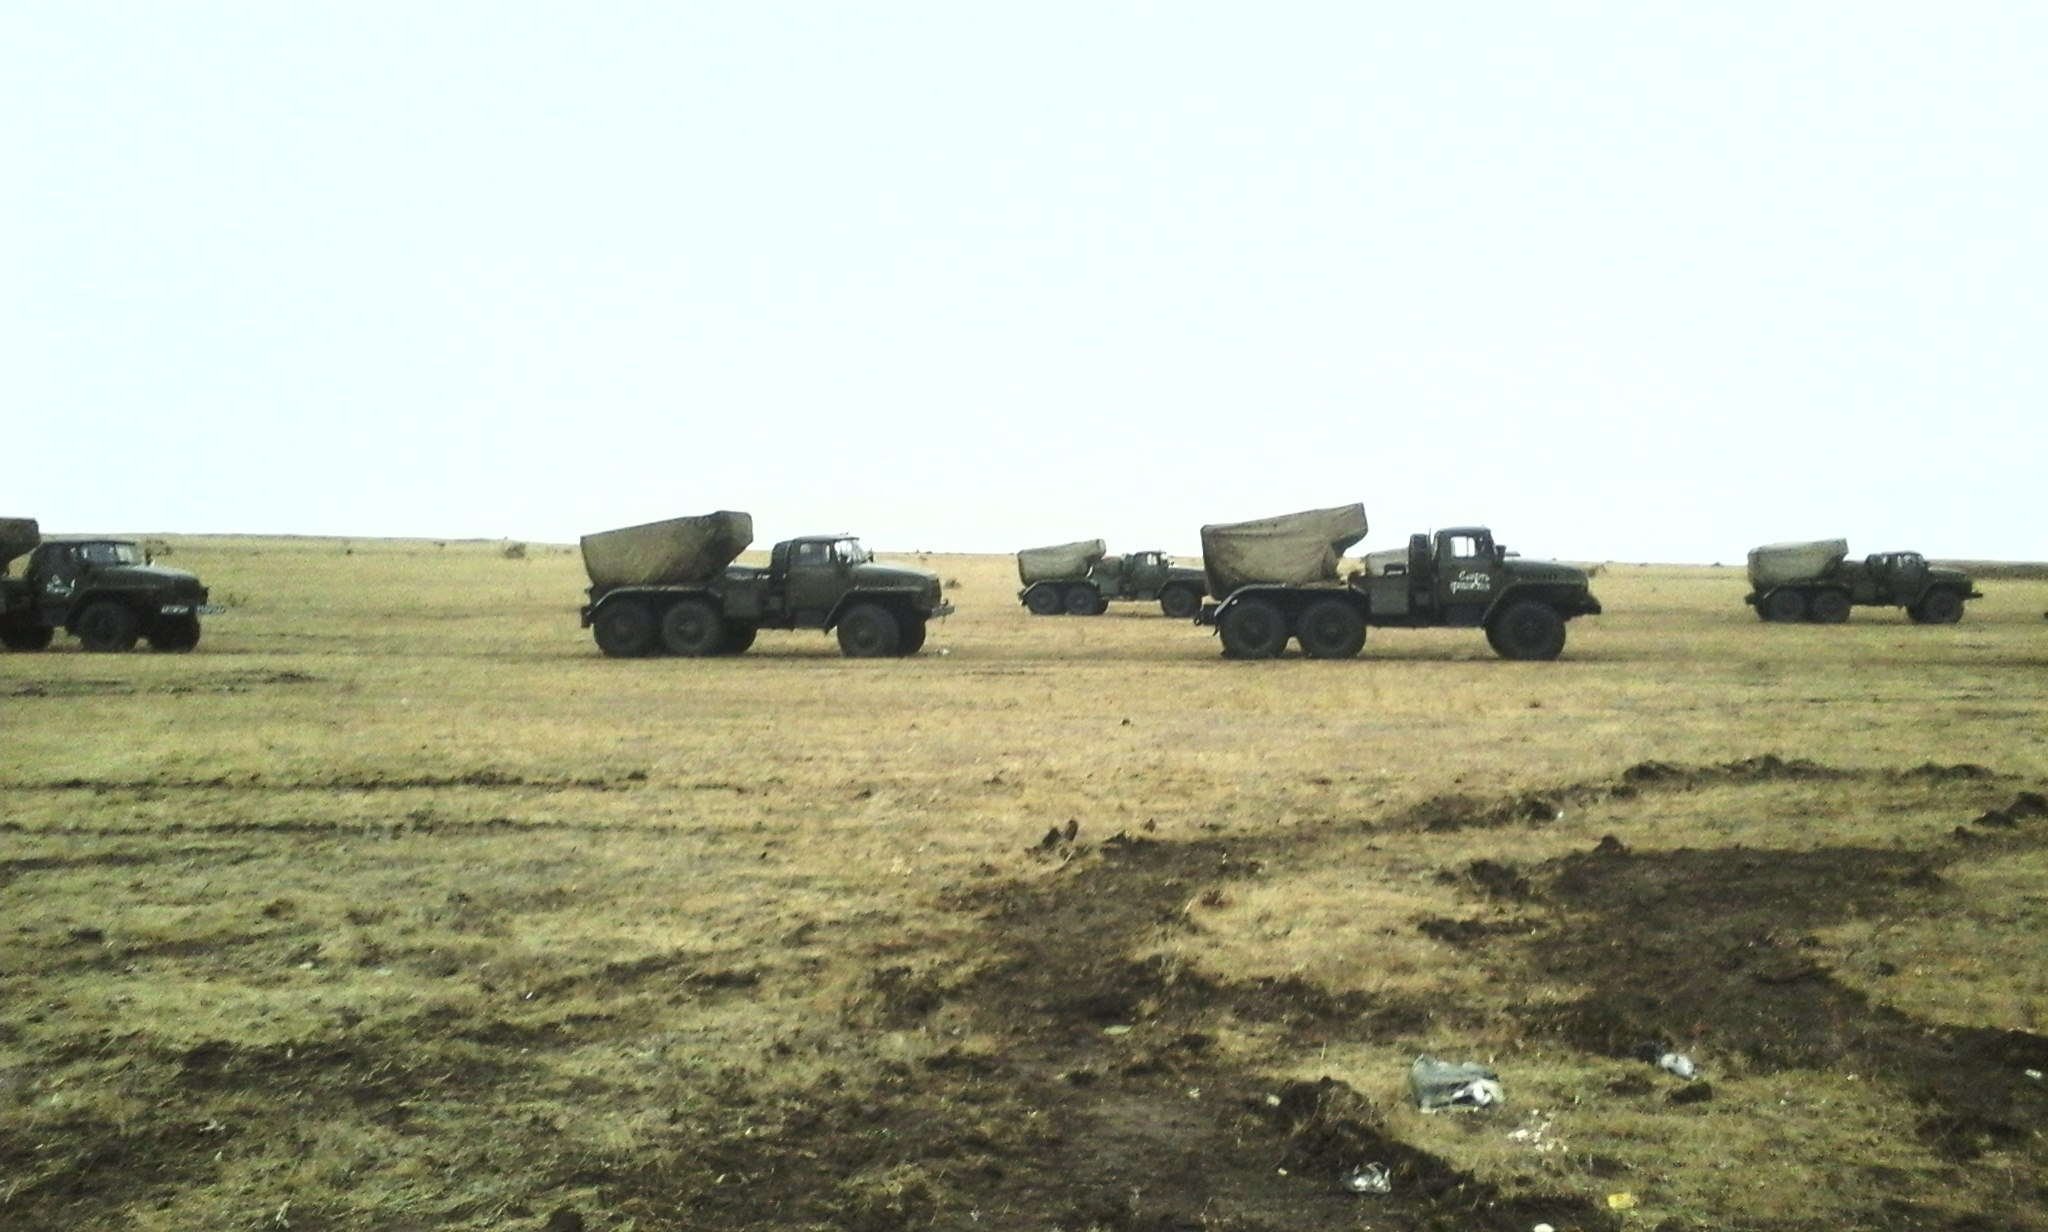 """Two different MLRS BM-21 Grads with identical """"Death to fascists"""" phrases on the right side. The photographs are from the aforementioned Nikolai Dugaev."""